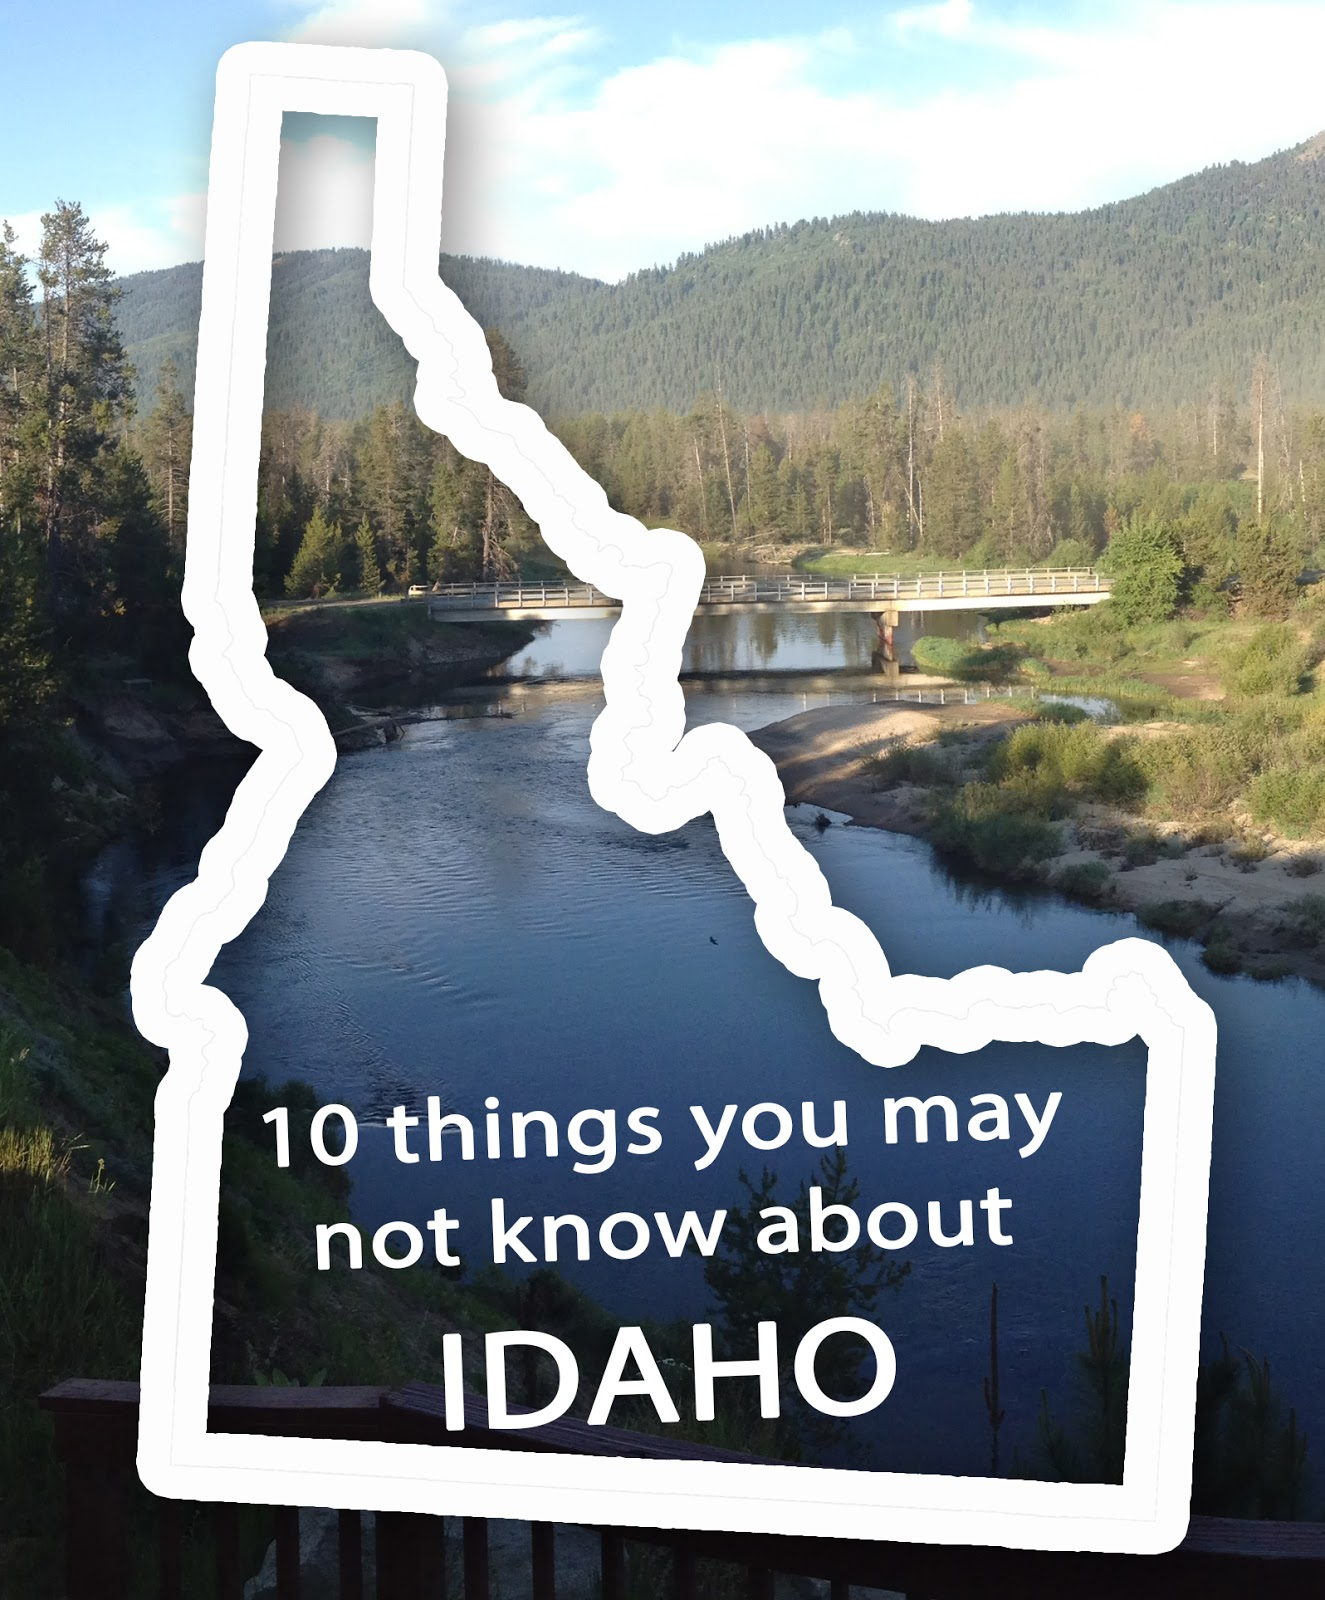 10 things about Idaho